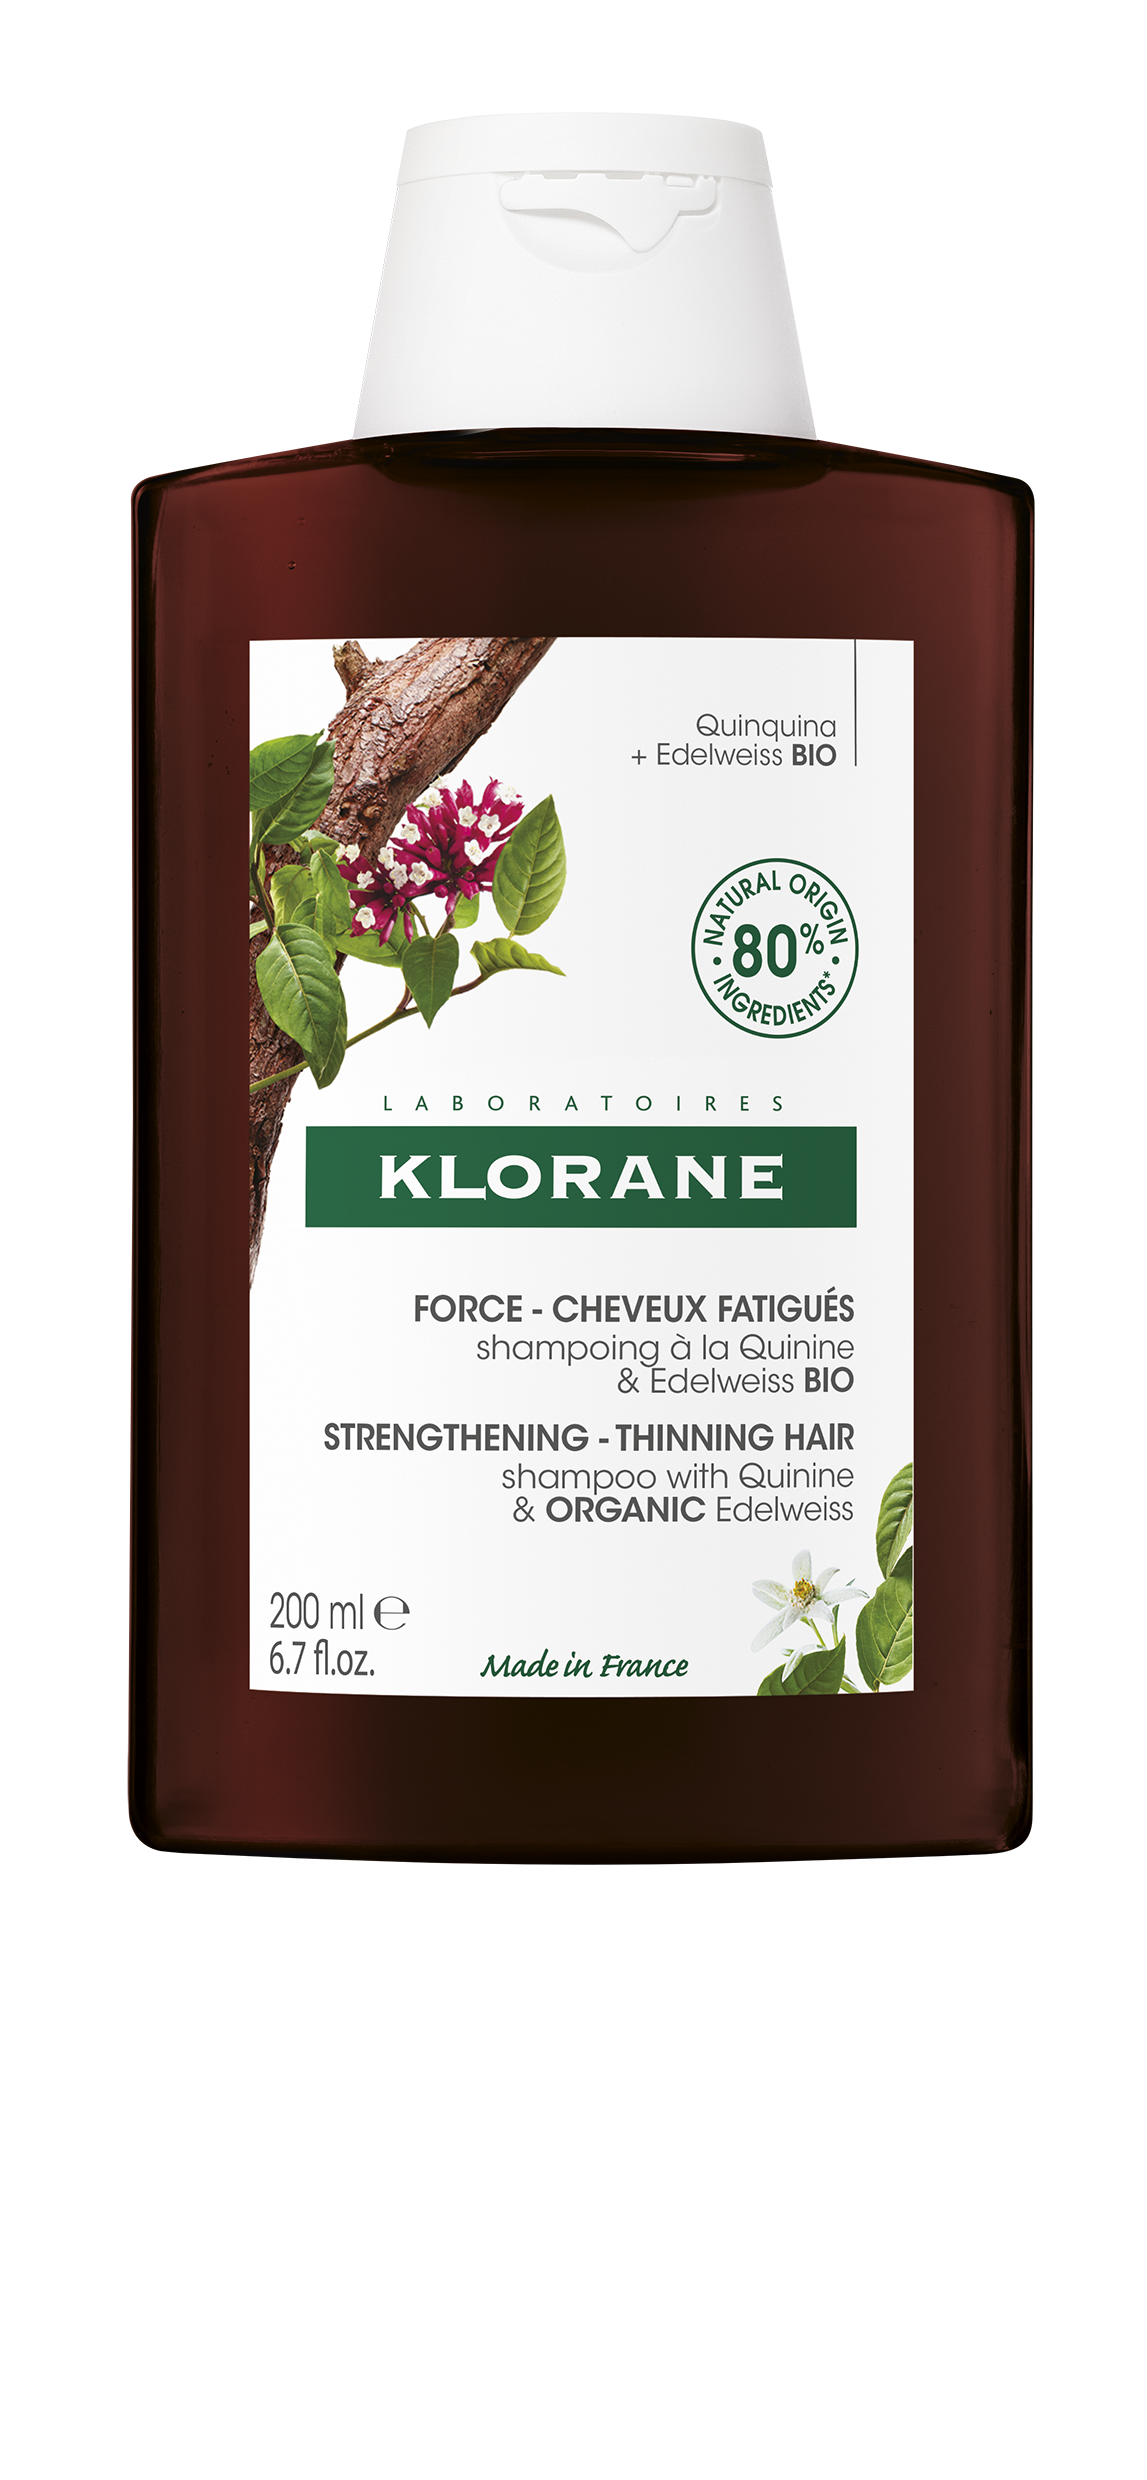 Klorane Strength Tired Hair & Fall Shampoo with Quinine and Edelweiss Organic 200ml